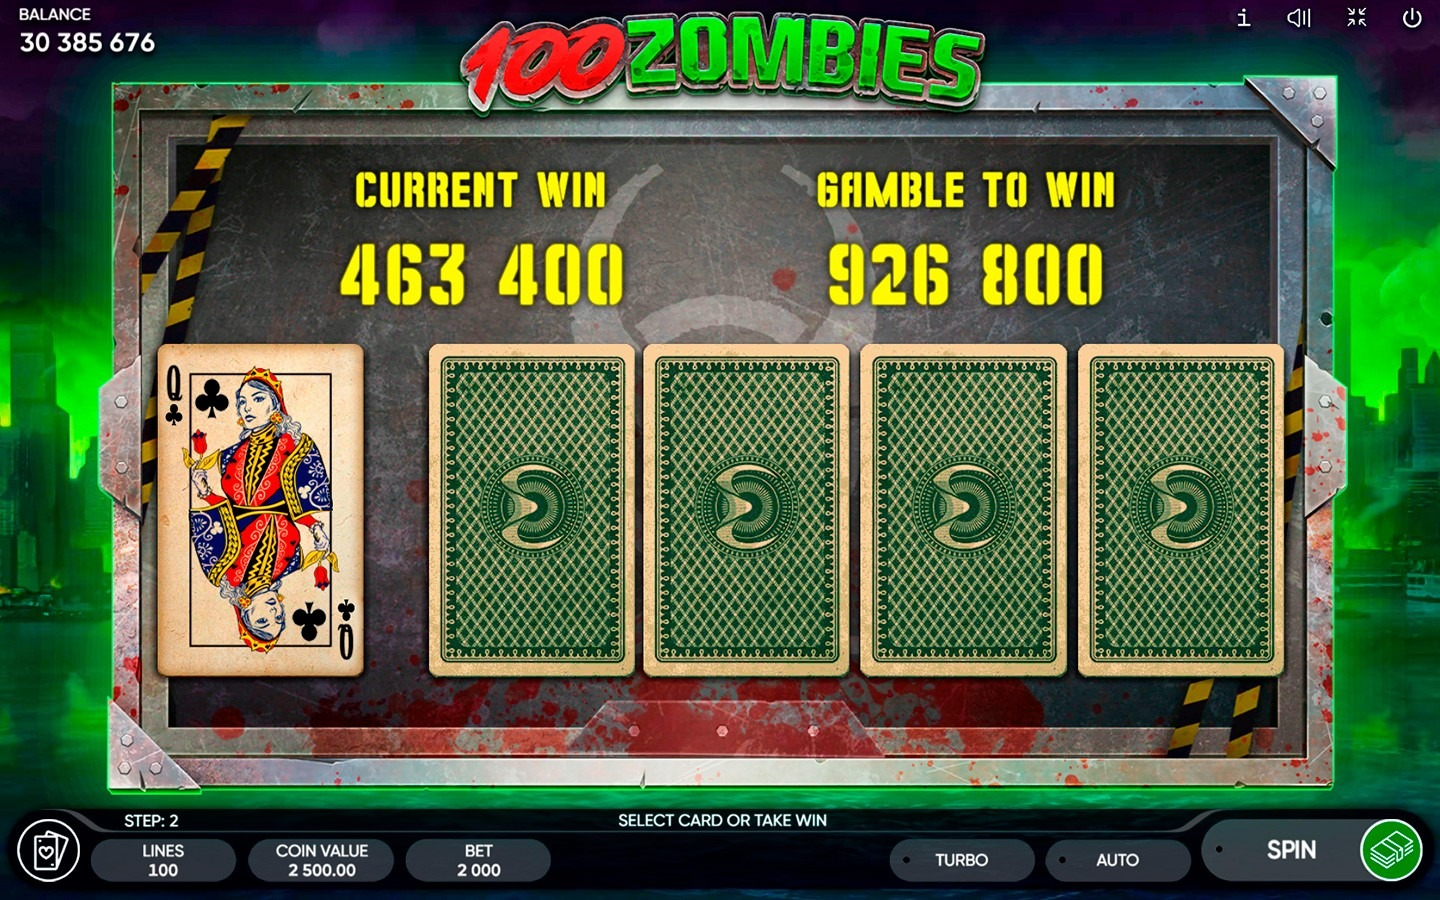 100 Zombies Slot Machine - How to Play